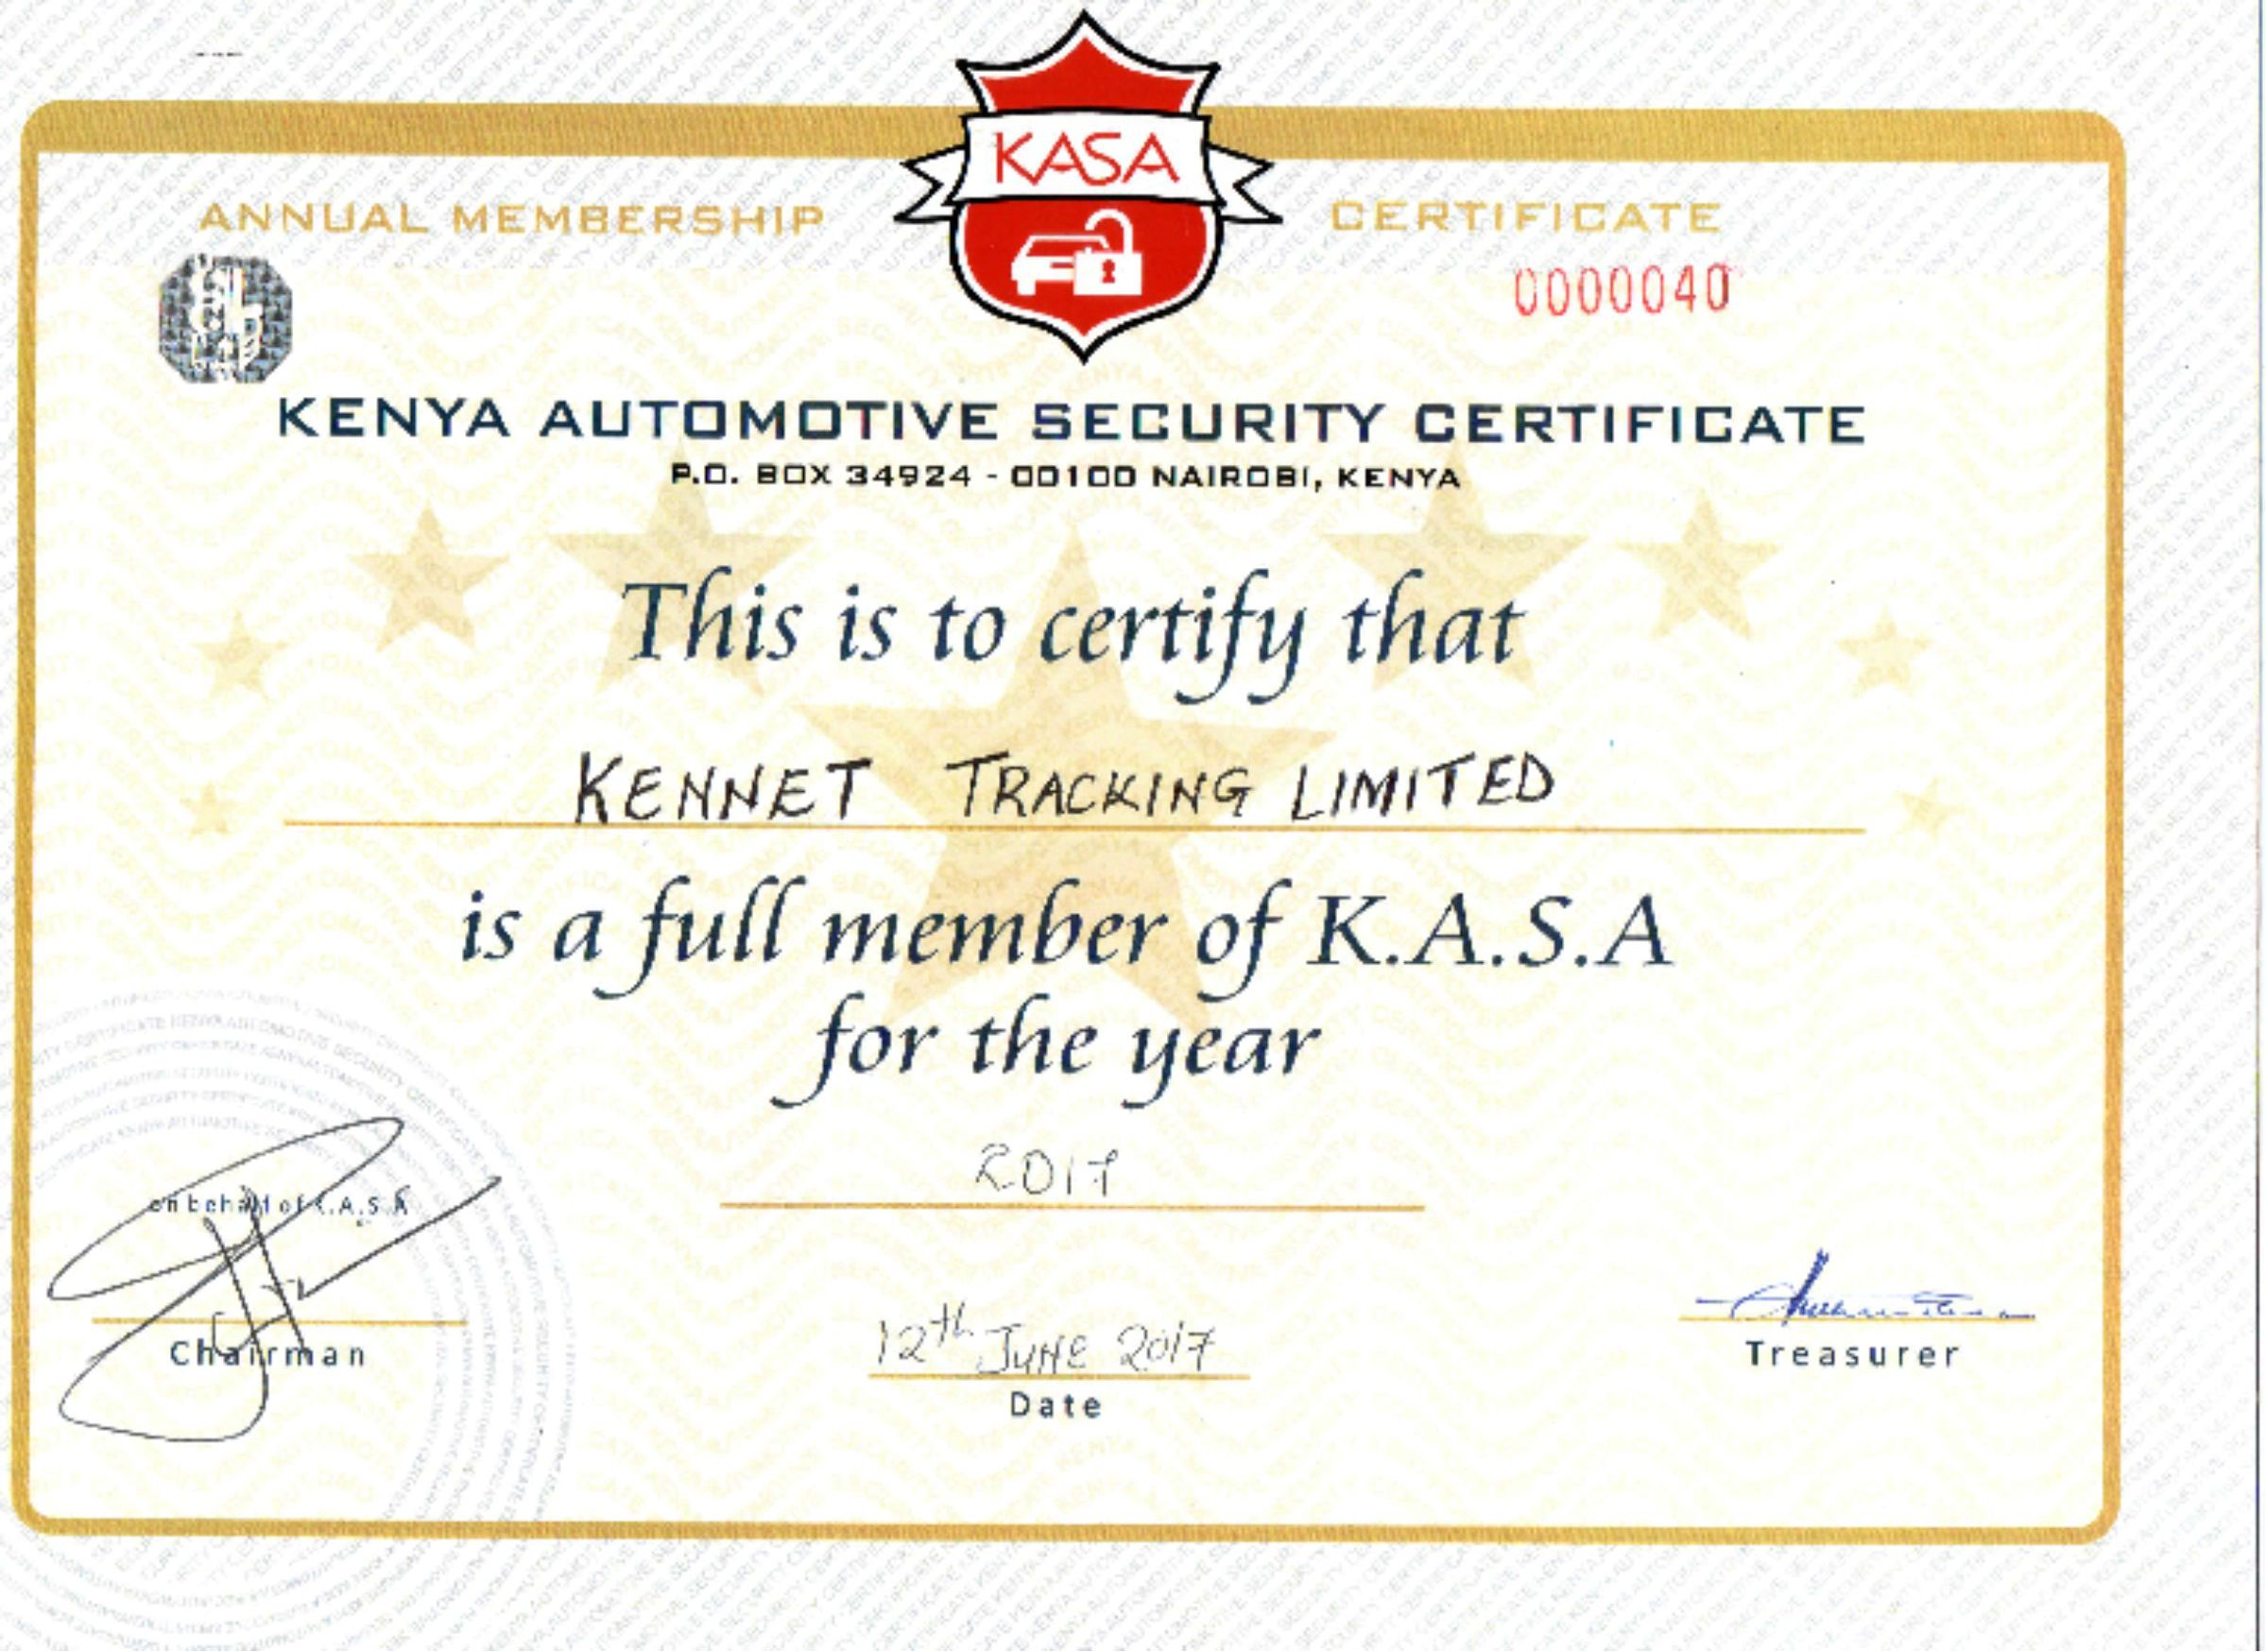 KENNET TRACKING LIMITED